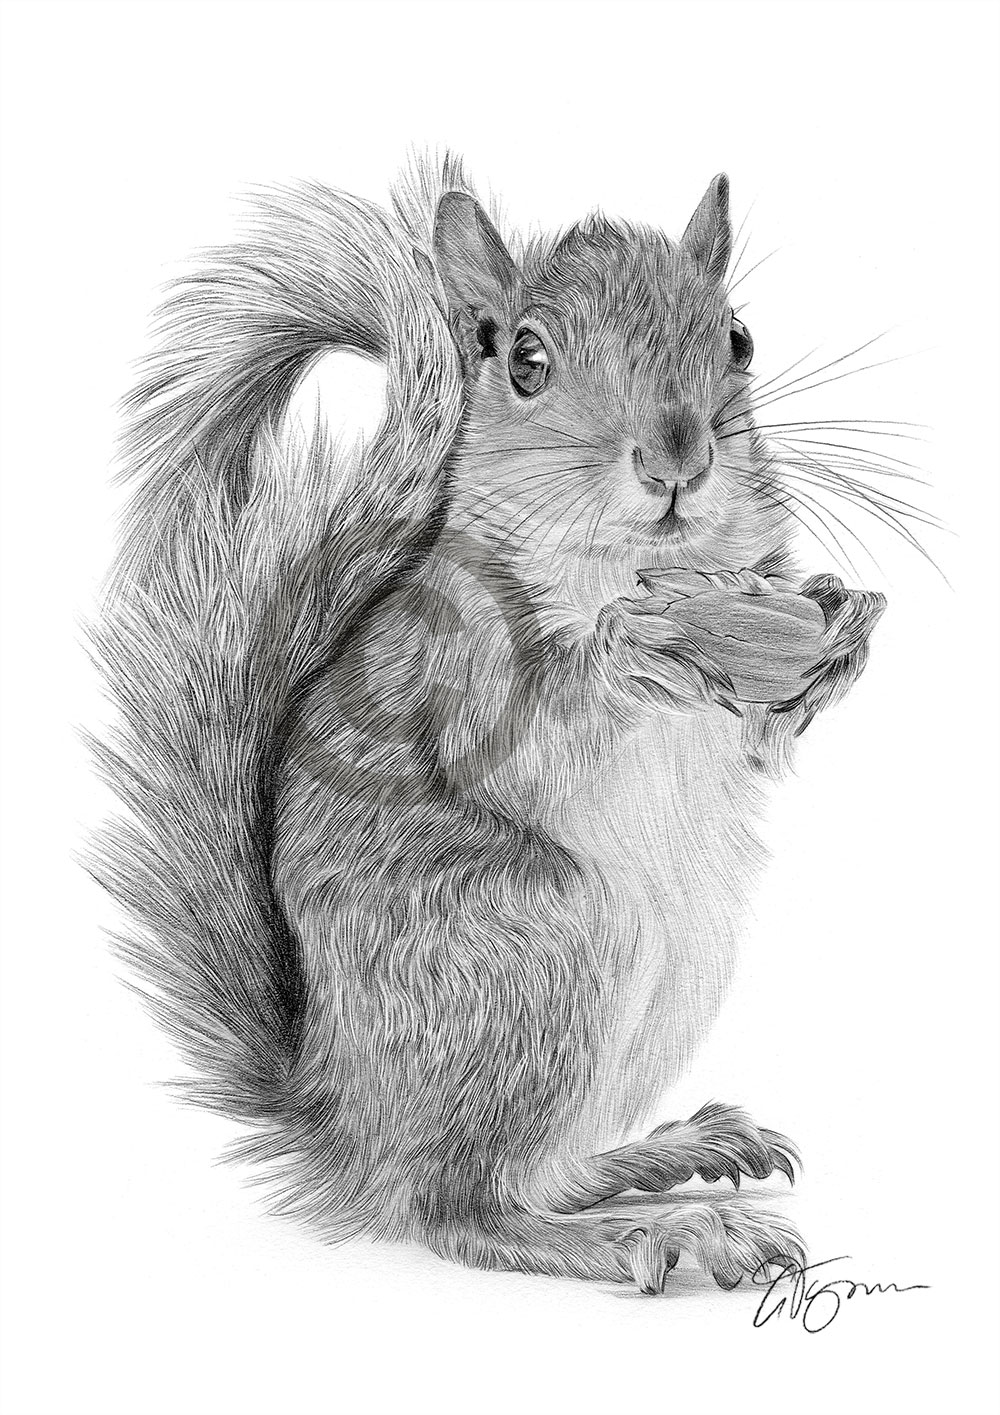 Pencil drawing of a red squirrel by artist Gary Tymon